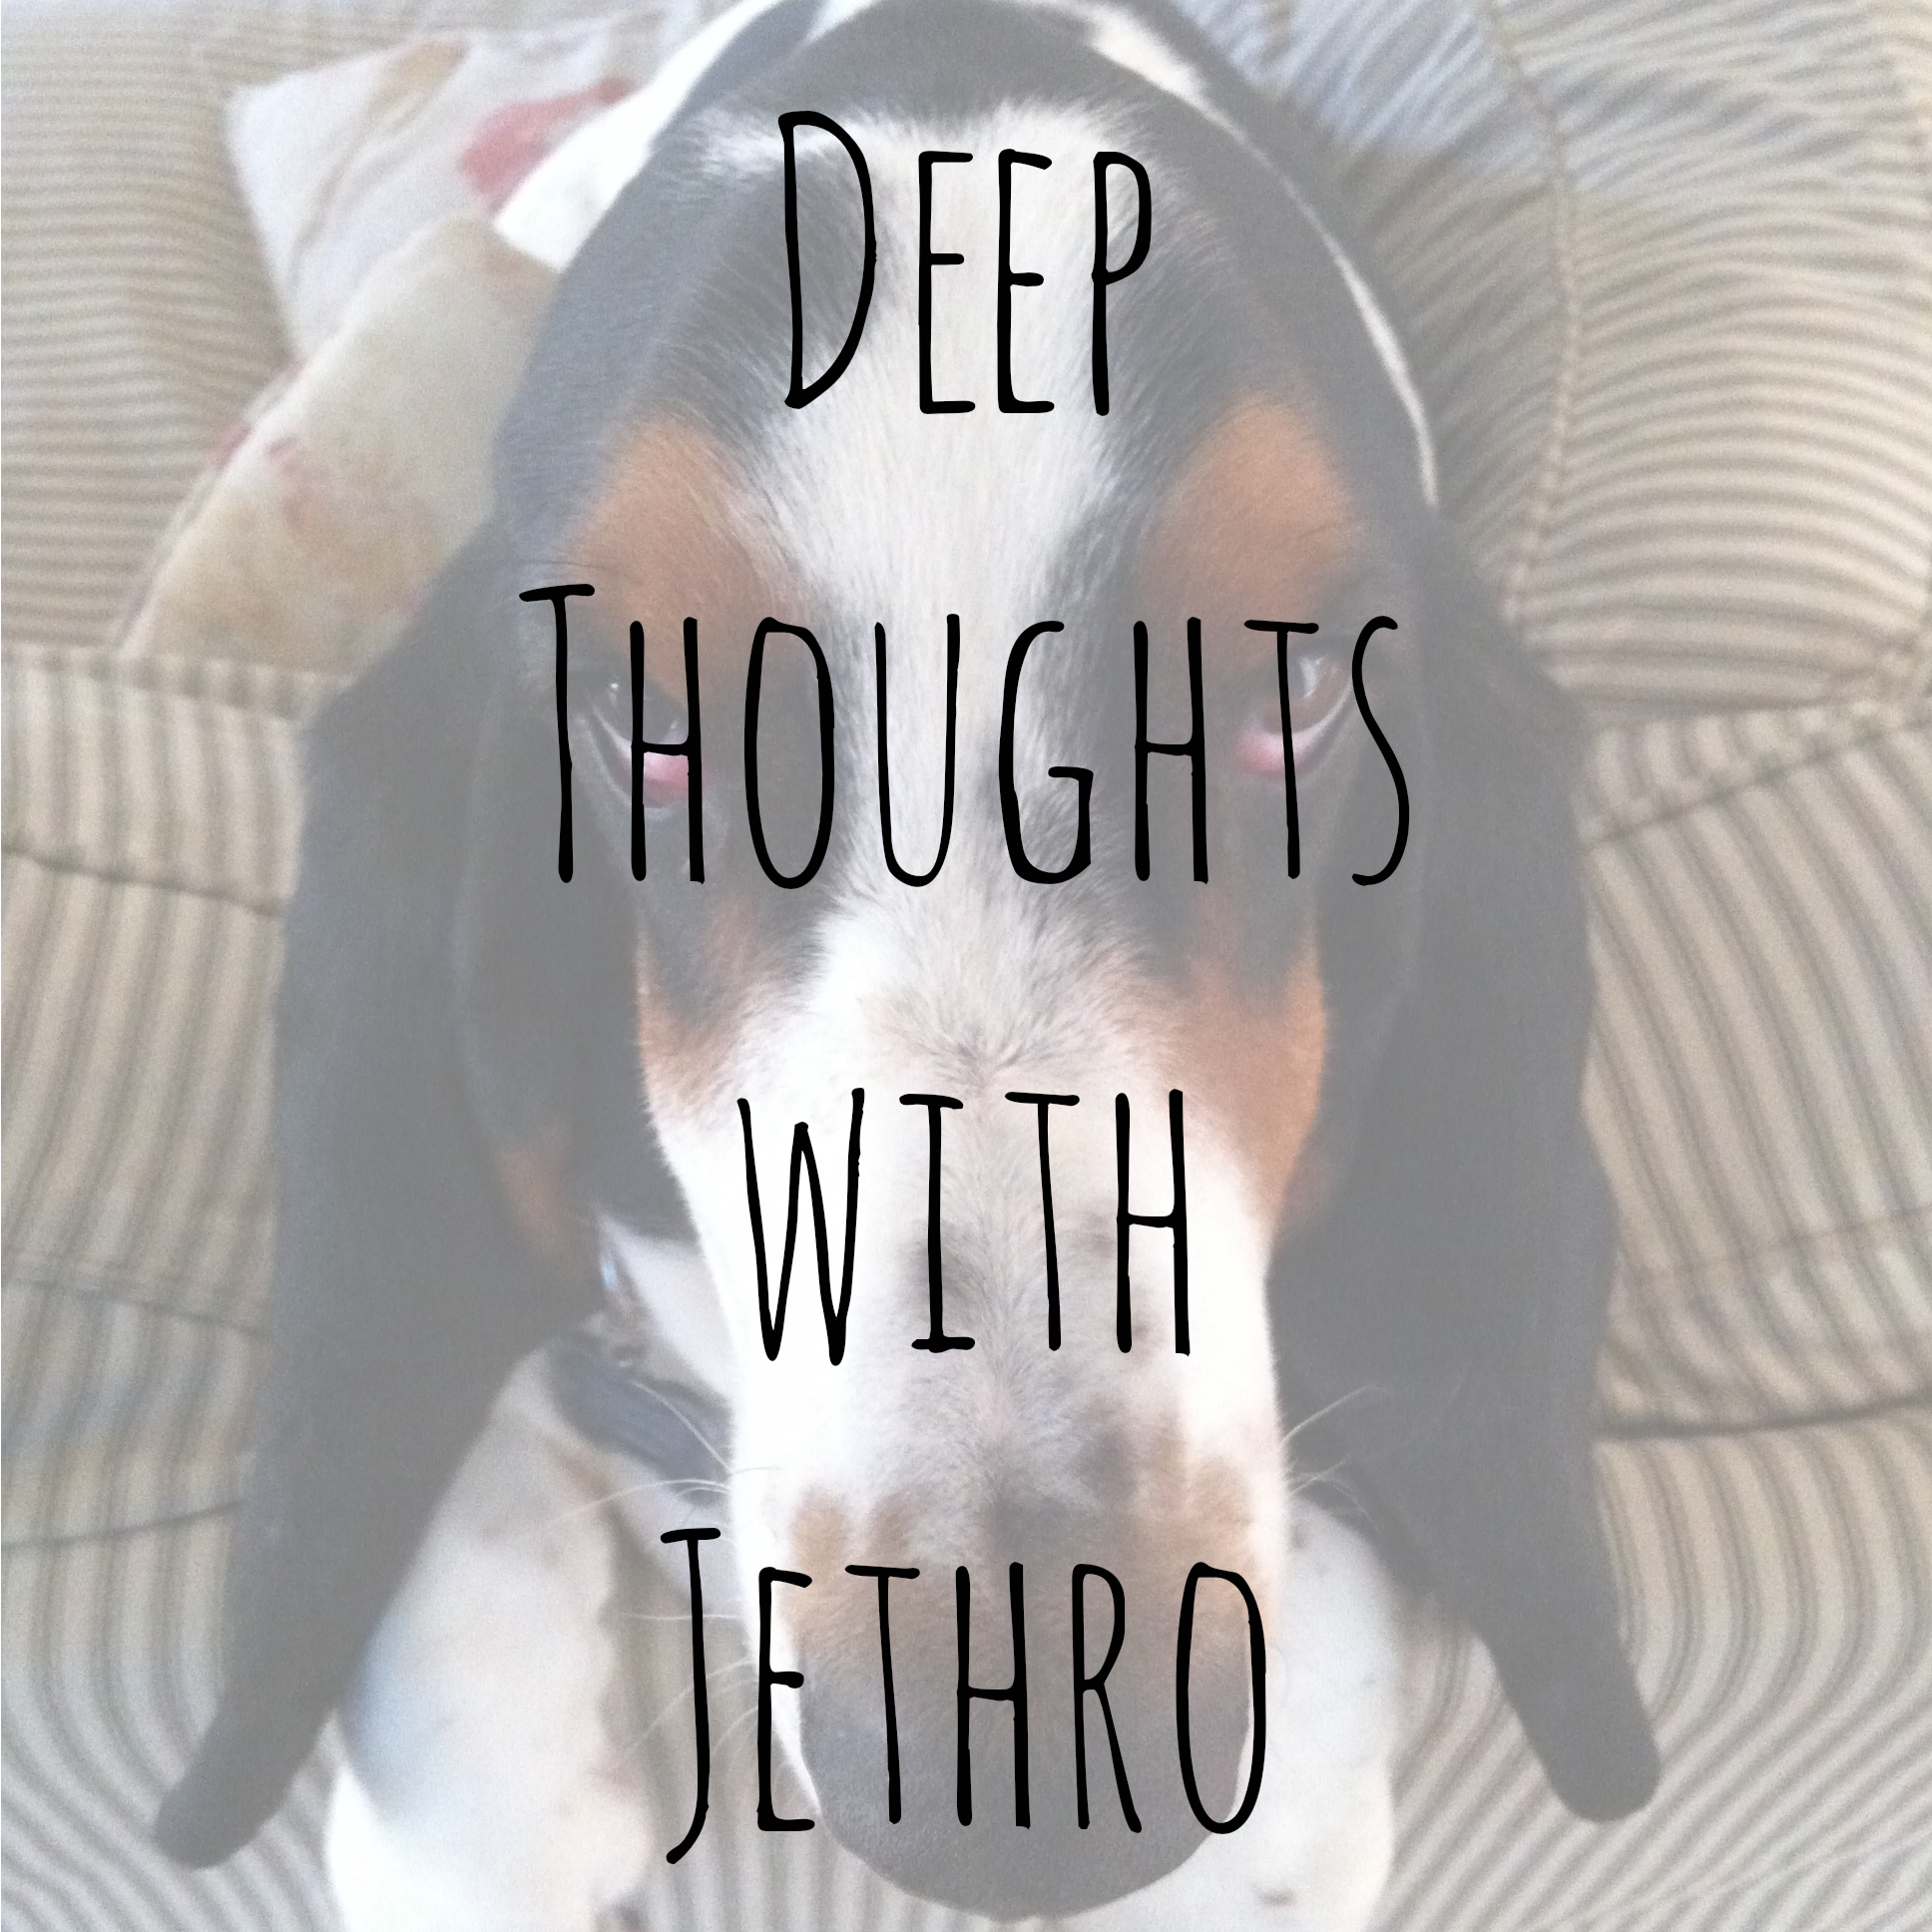 A collection of Jethro the basset hound's favorite quotes.